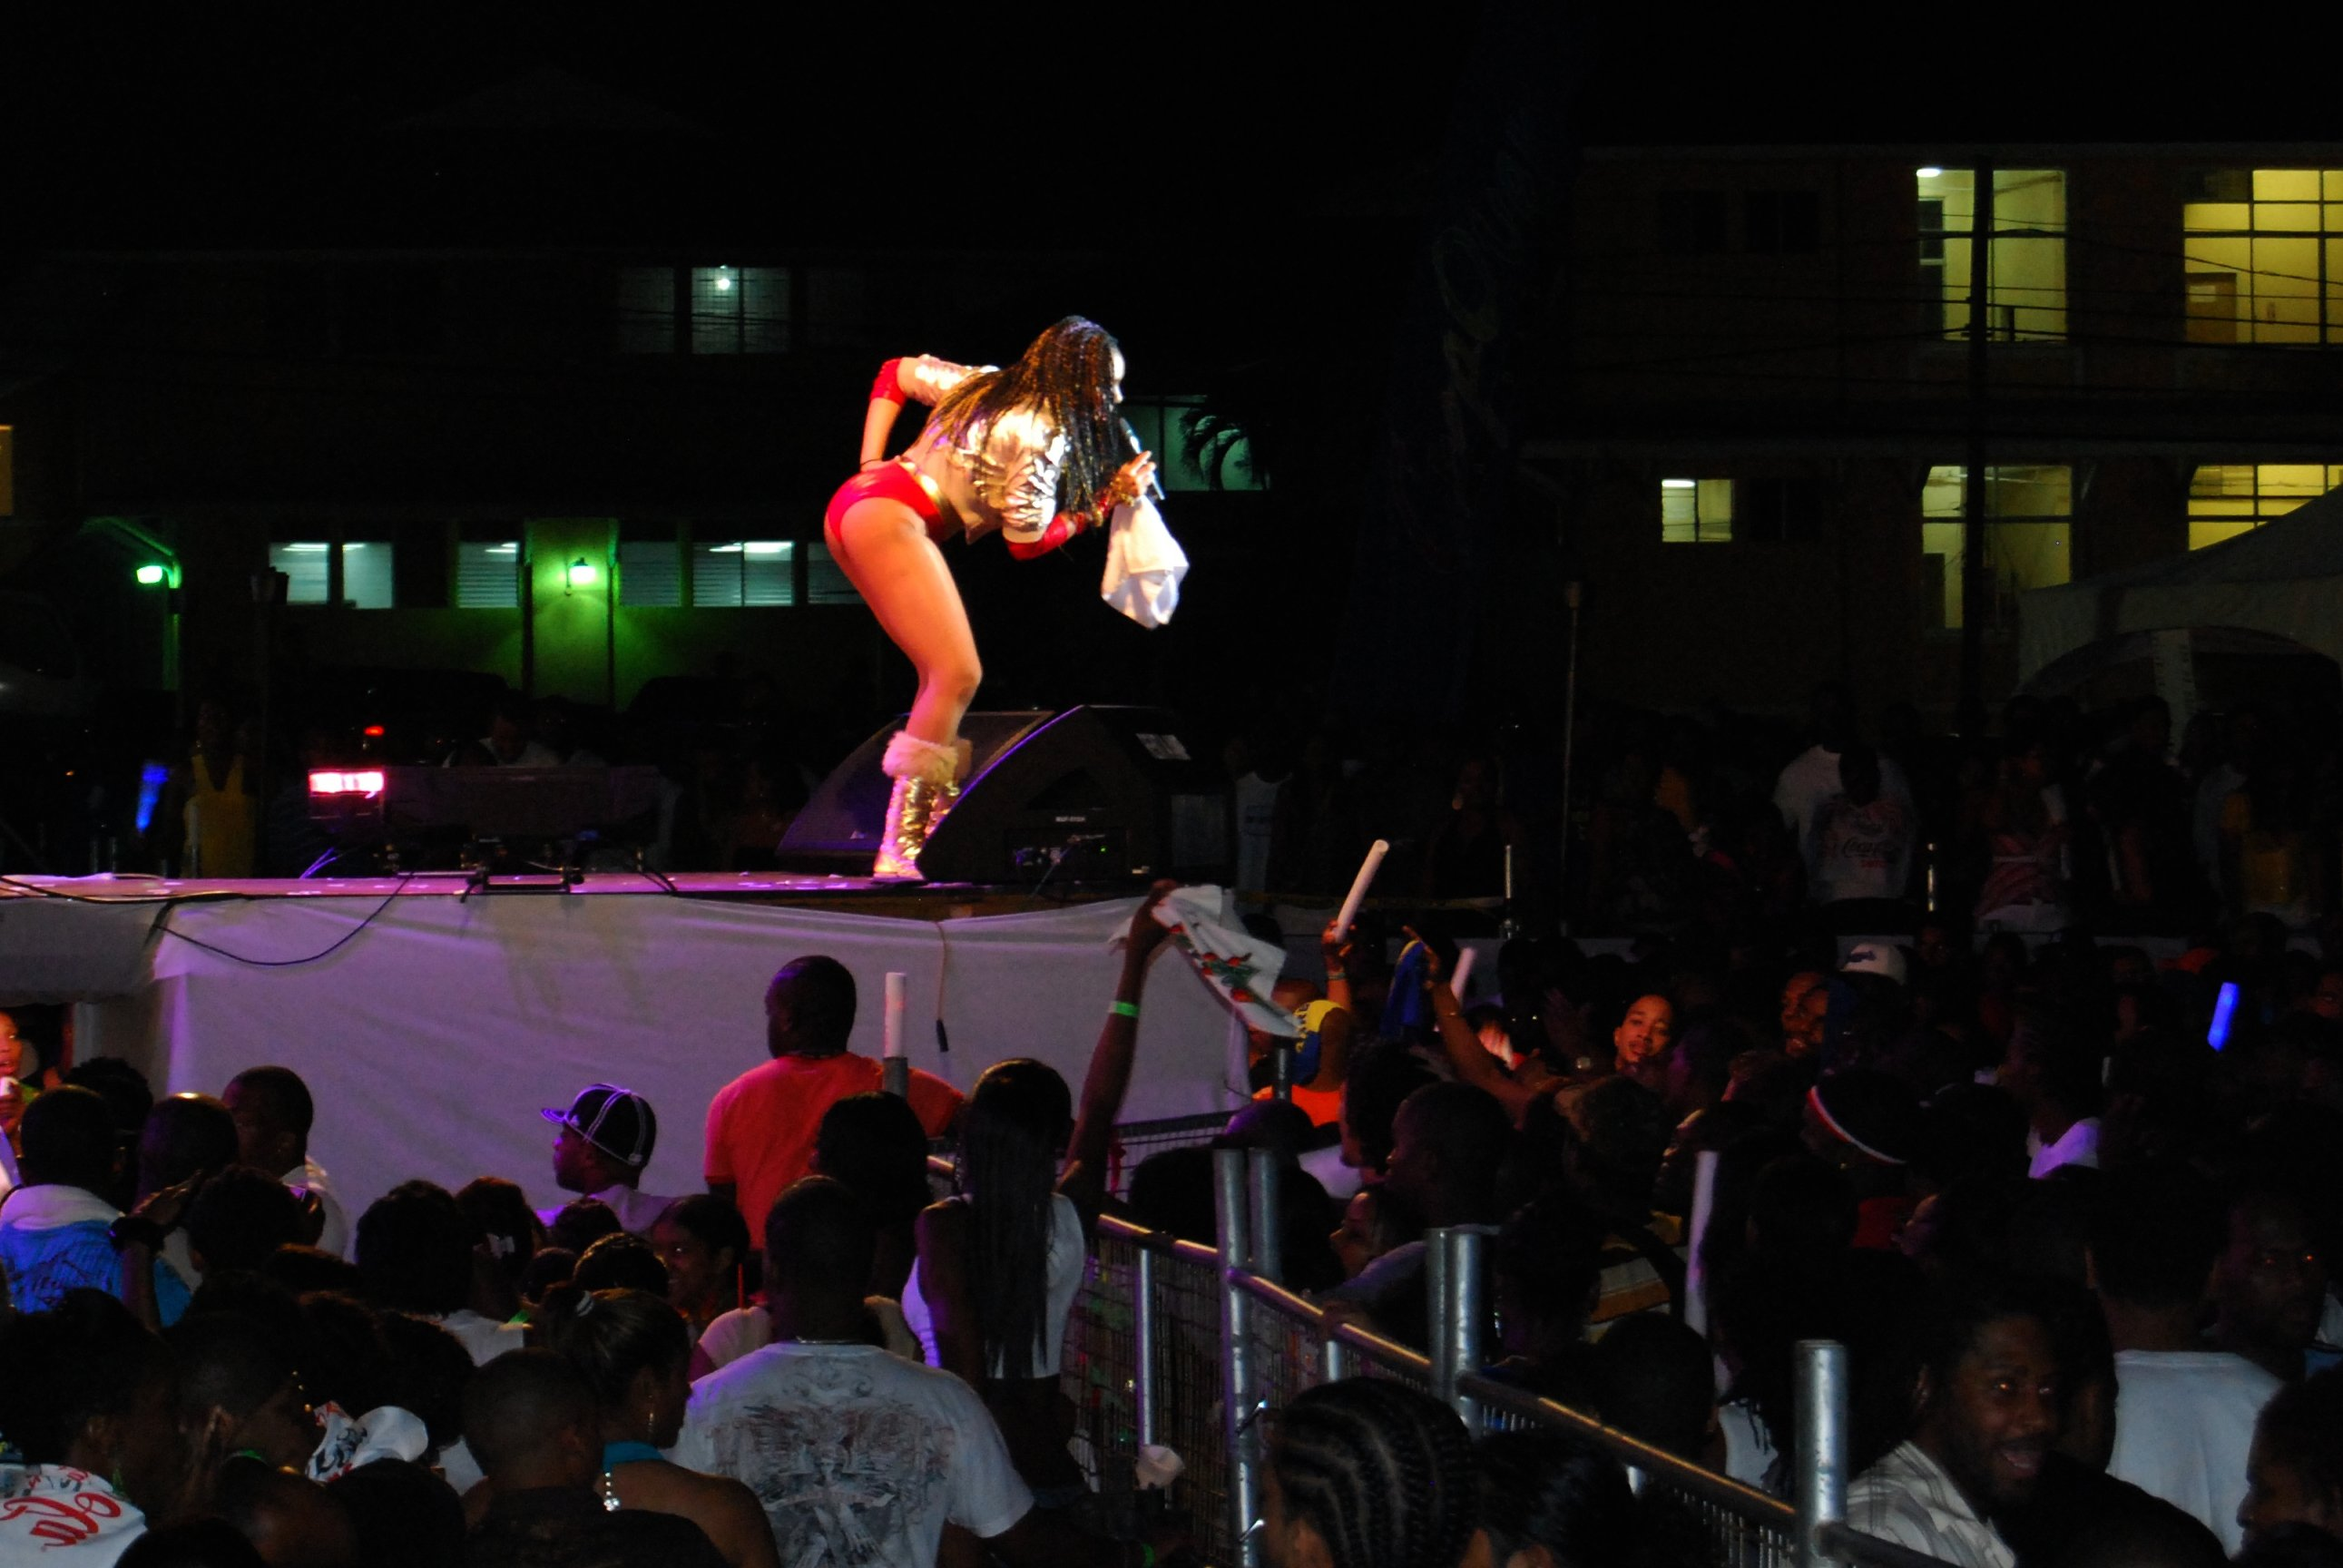 ファイル:Destra Garcia on Stage.jpg - Wikipedia